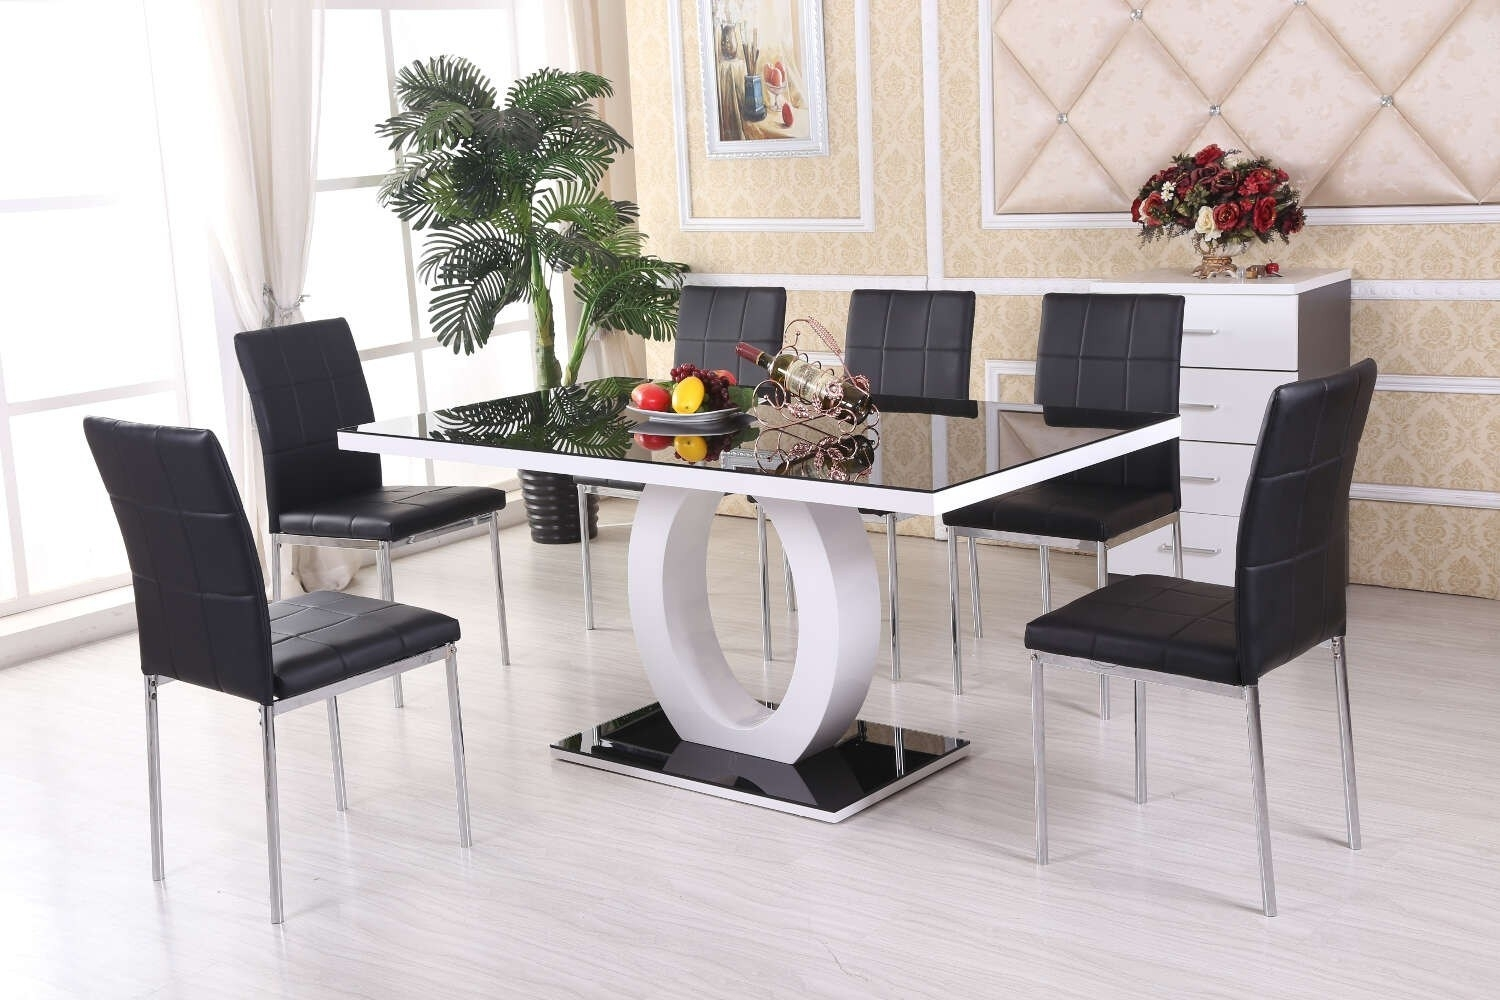 Kitchen Table 6 Chairs Set – Castrophotos In Latest Jaxon Grey 5 Piece Round Extension Dining Sets With Upholstered Chairs (View 6 of 20)